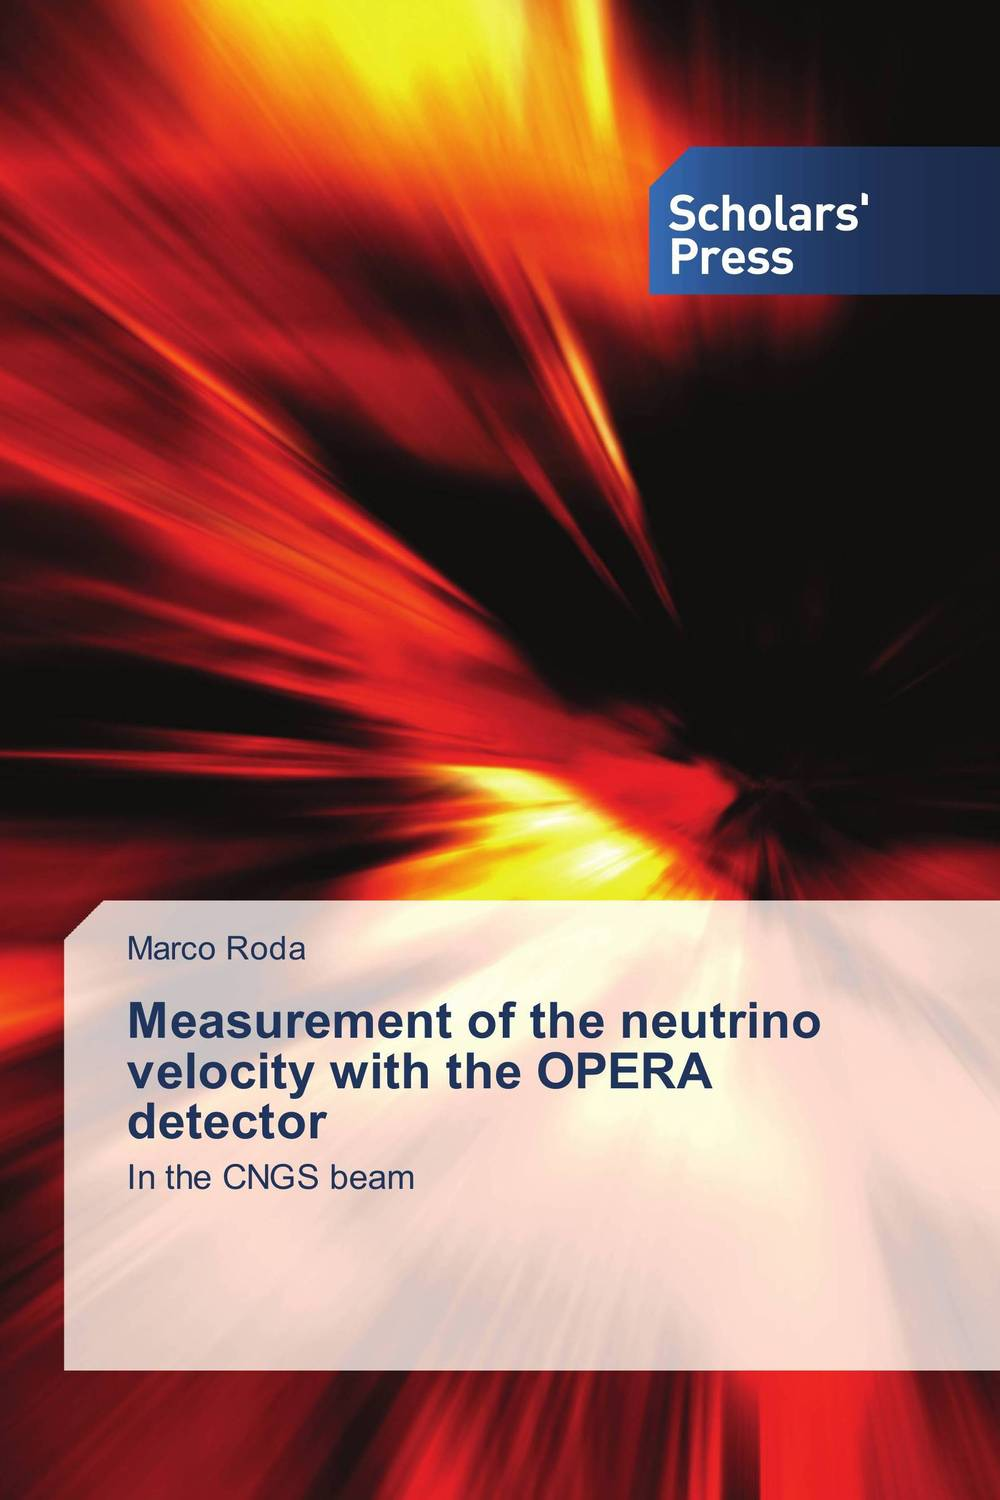 Measurement of the neutrino velocity with the OPERA detector the counterlife